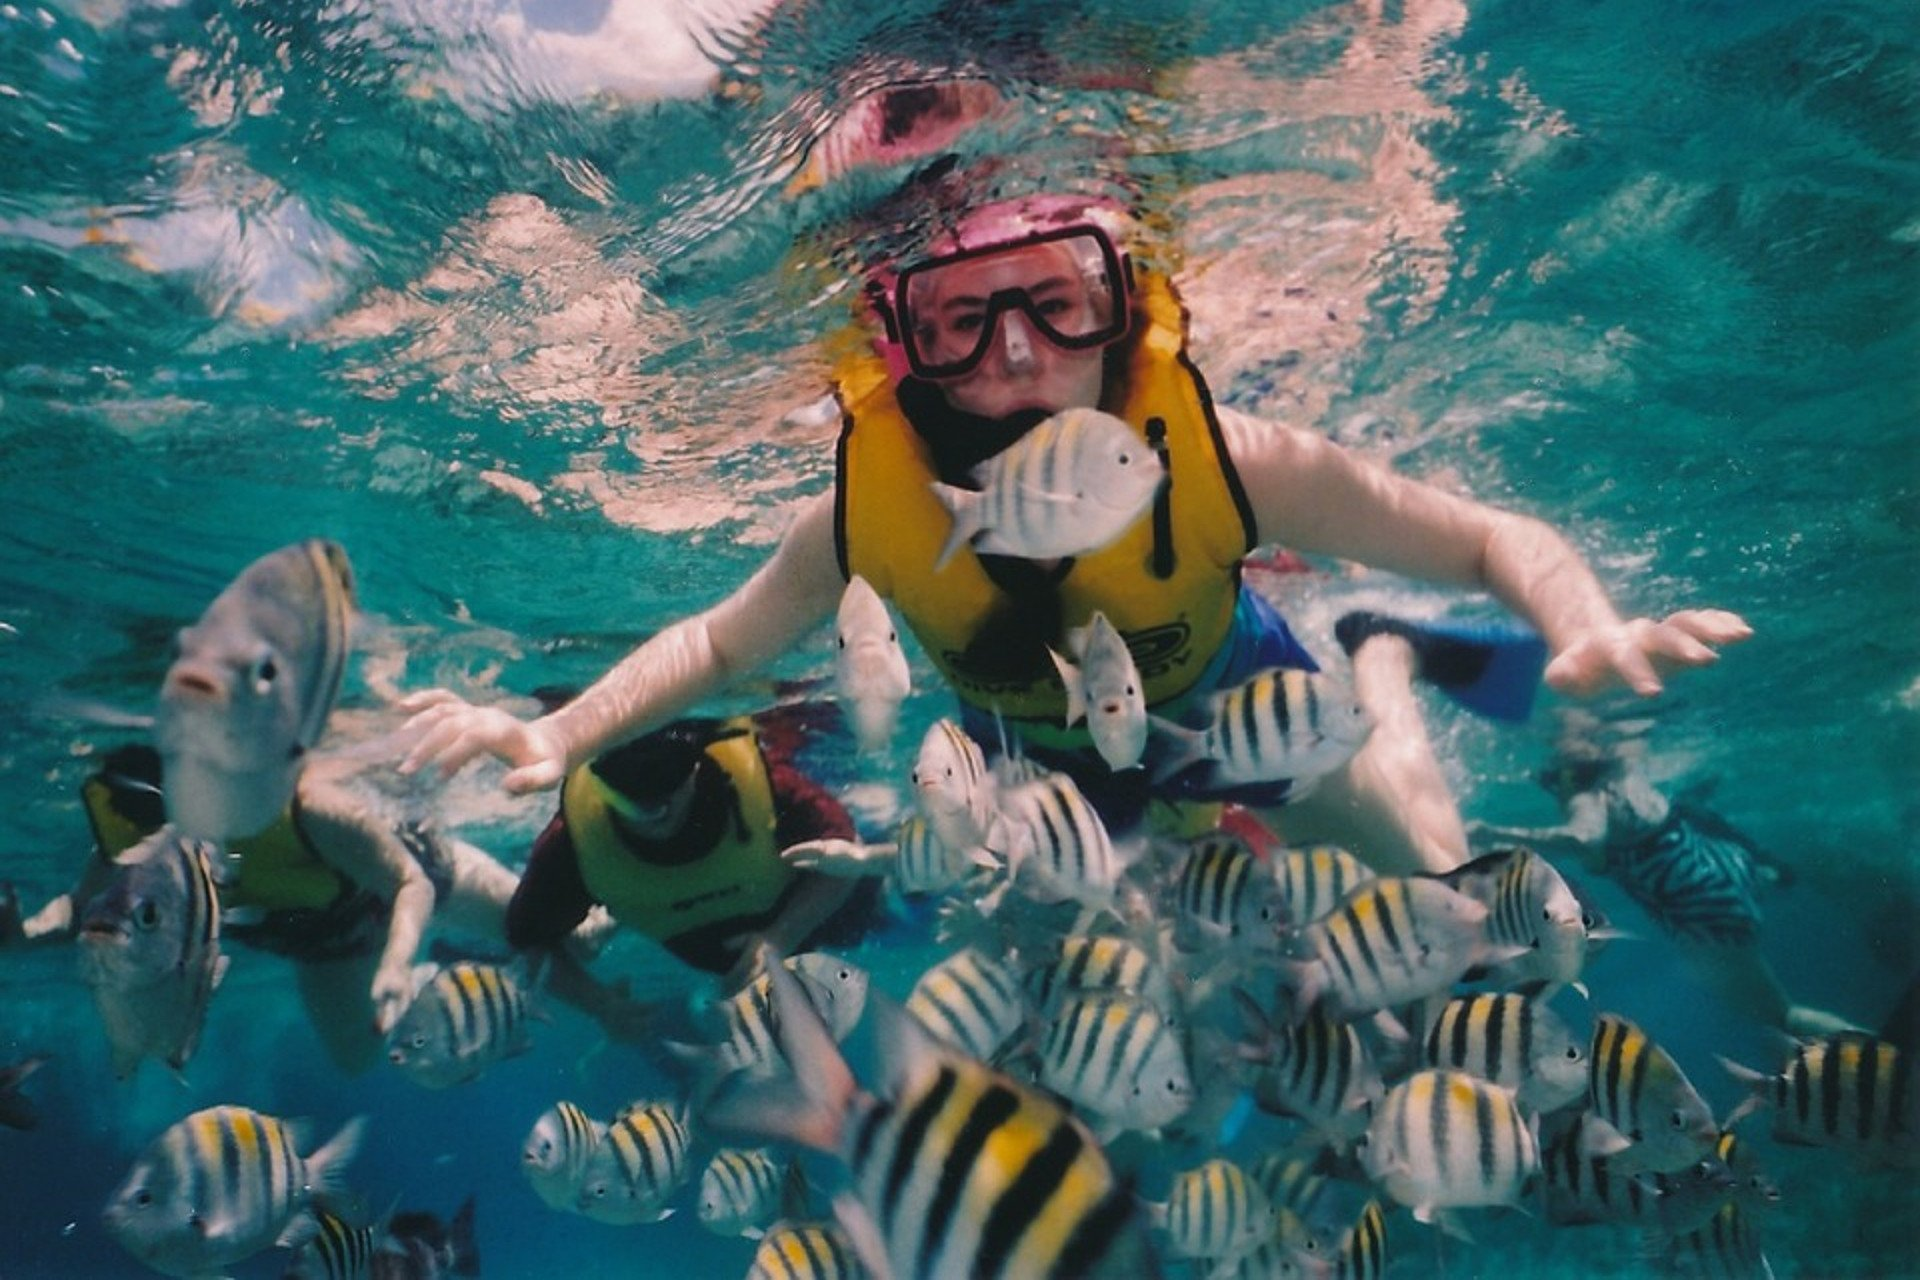 a diver in clear water surrounded by plenty of fishes